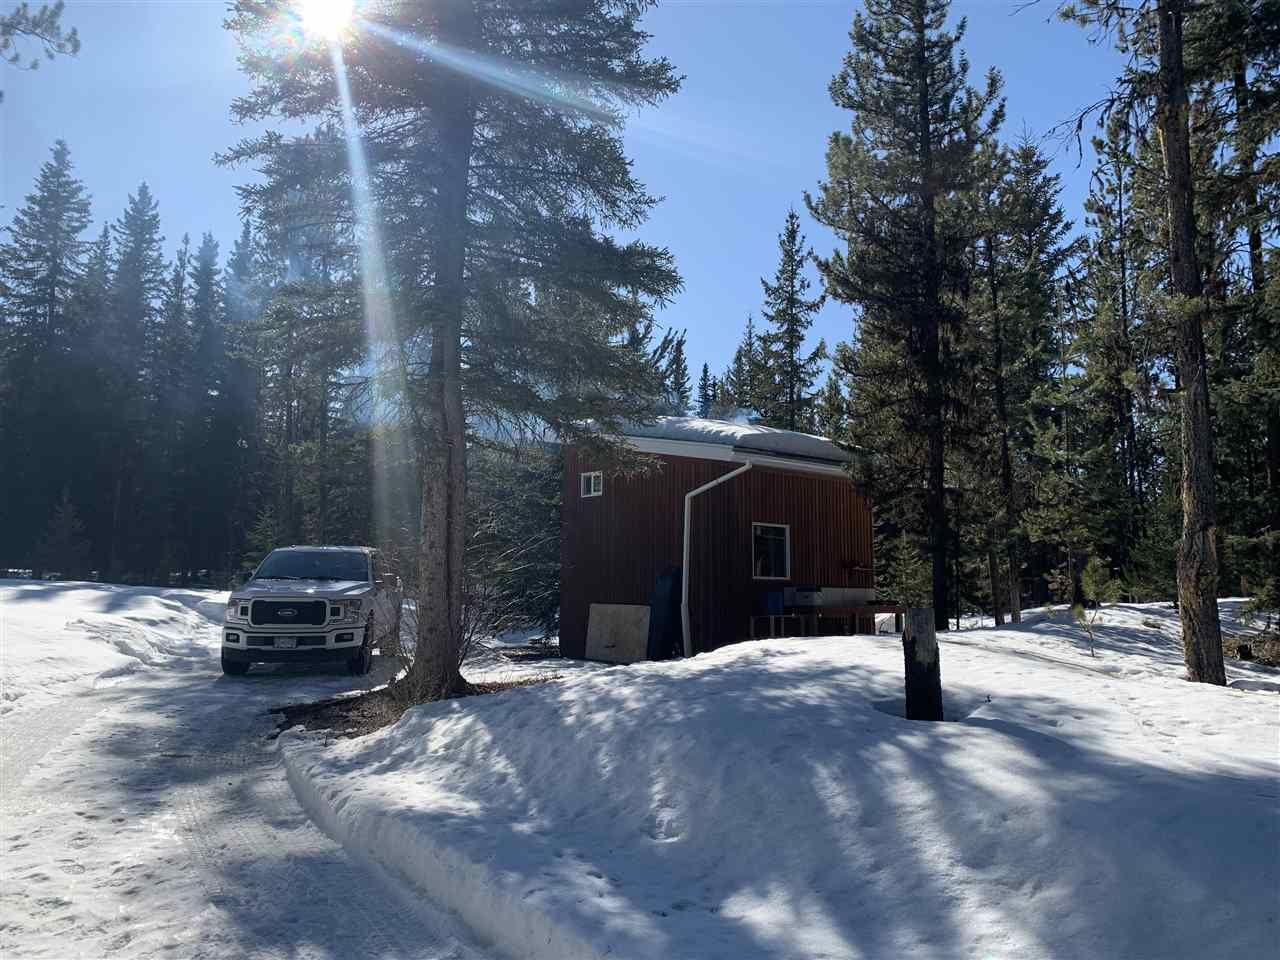 Main Photo: 6510 W FAWN Road in Lone Butte: Lone Butte/Green Lk/Watch Lk House for sale (100 Mile House (Zone 10))  : MLS®# R2553691